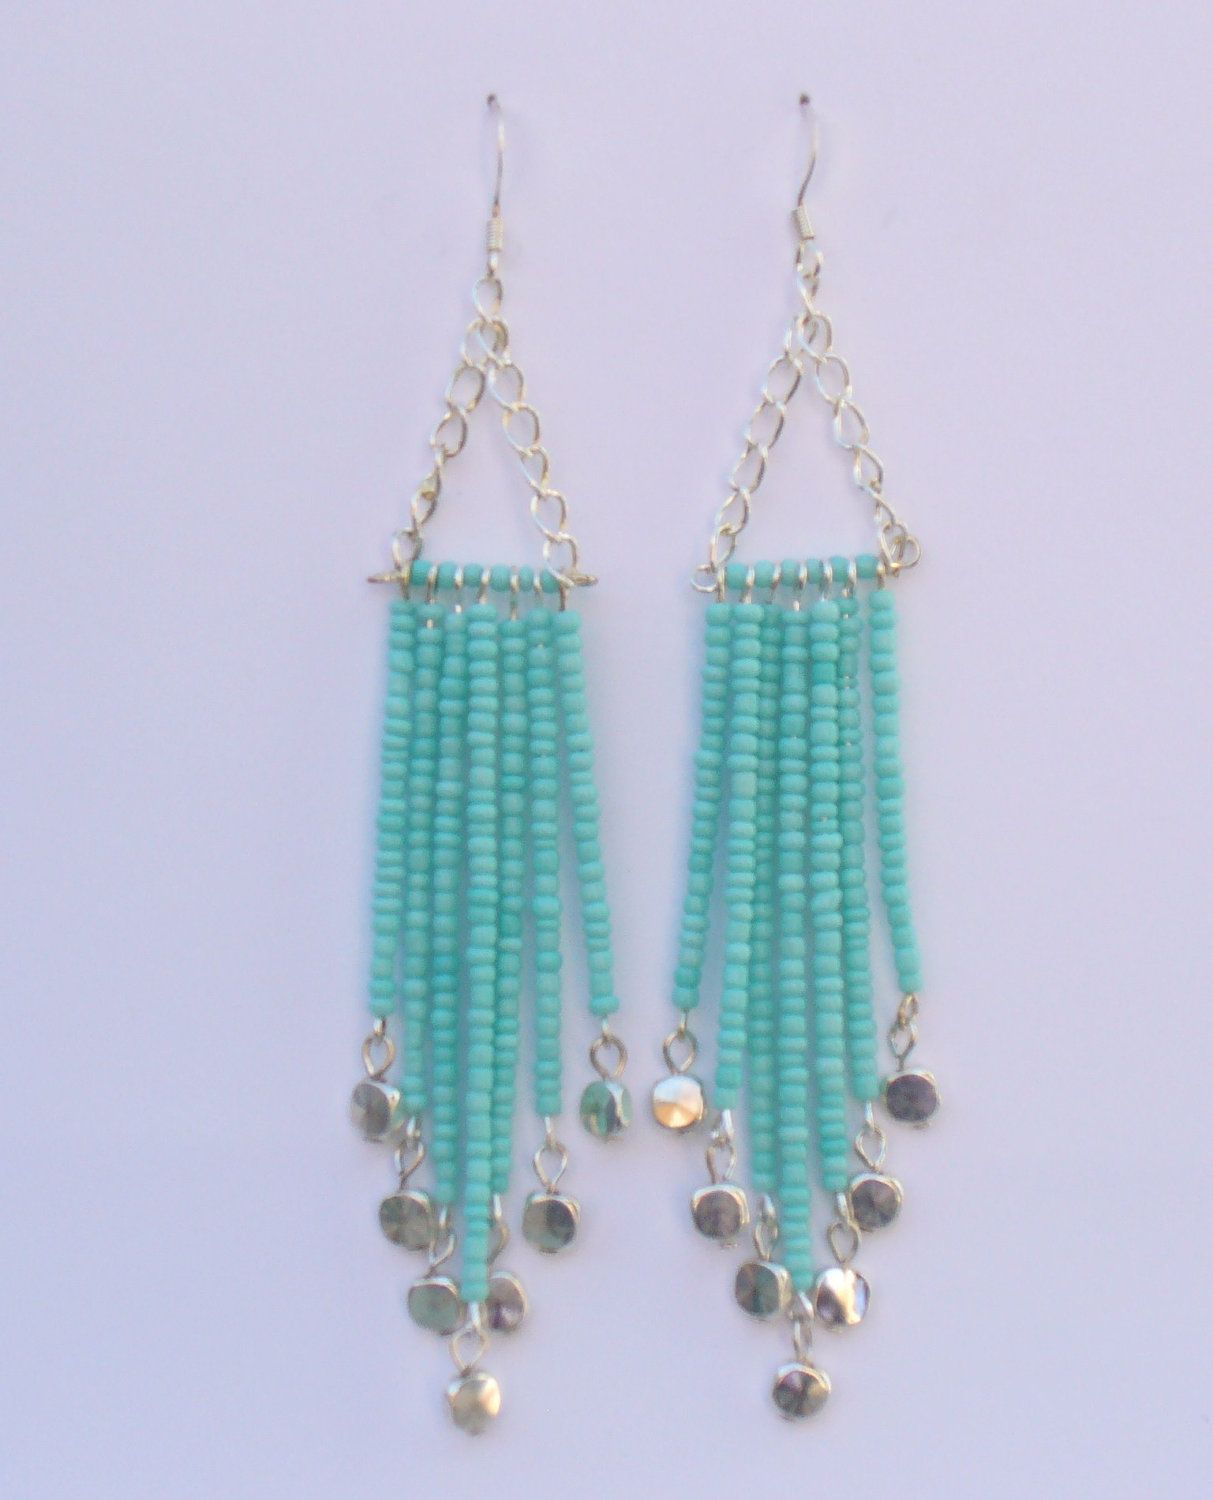 Seed bead chandelier earrings by lizzysblingythingys on etsy cute seed bead chandelier earrings by lizzysblingythingys on etsy cute design do shorter version mozeypictures Choice Image